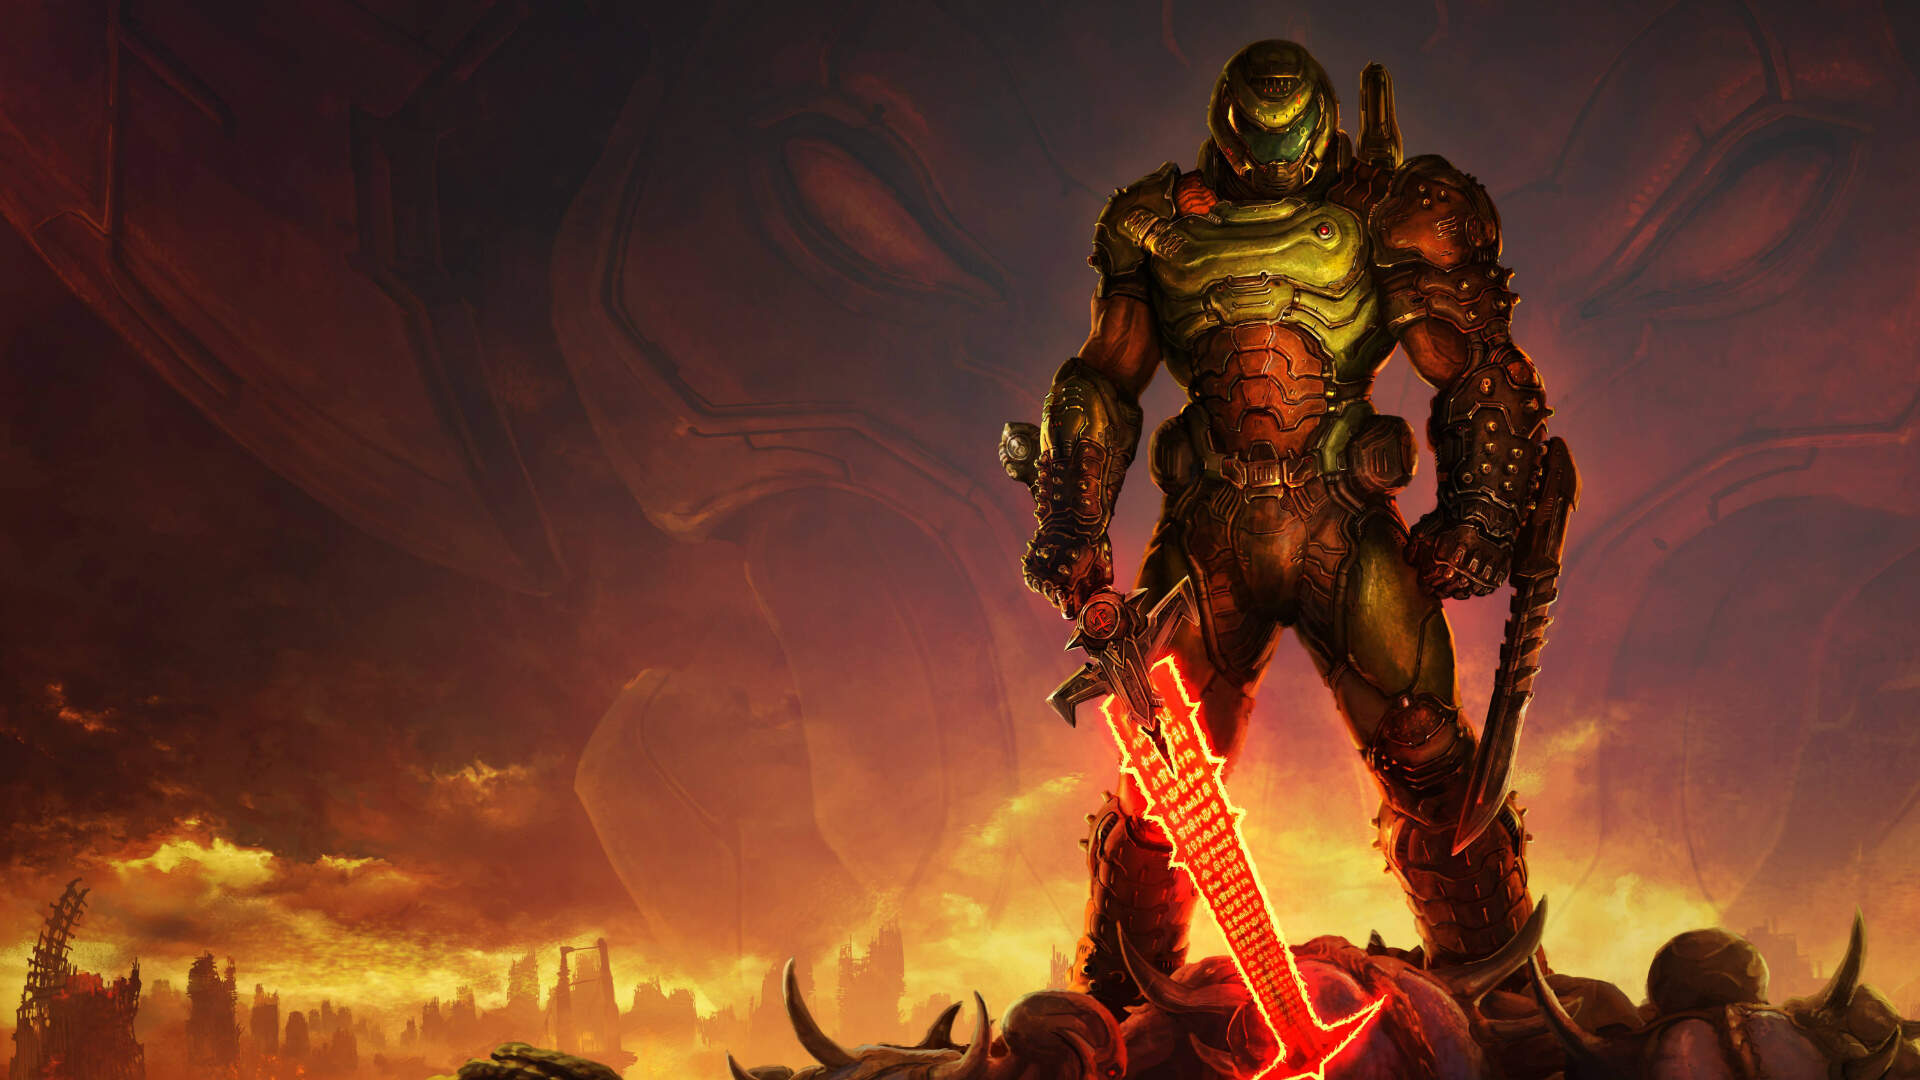 Doom Eternal Will Get Rid of Denuvo Anti-Cheat on PC Soon